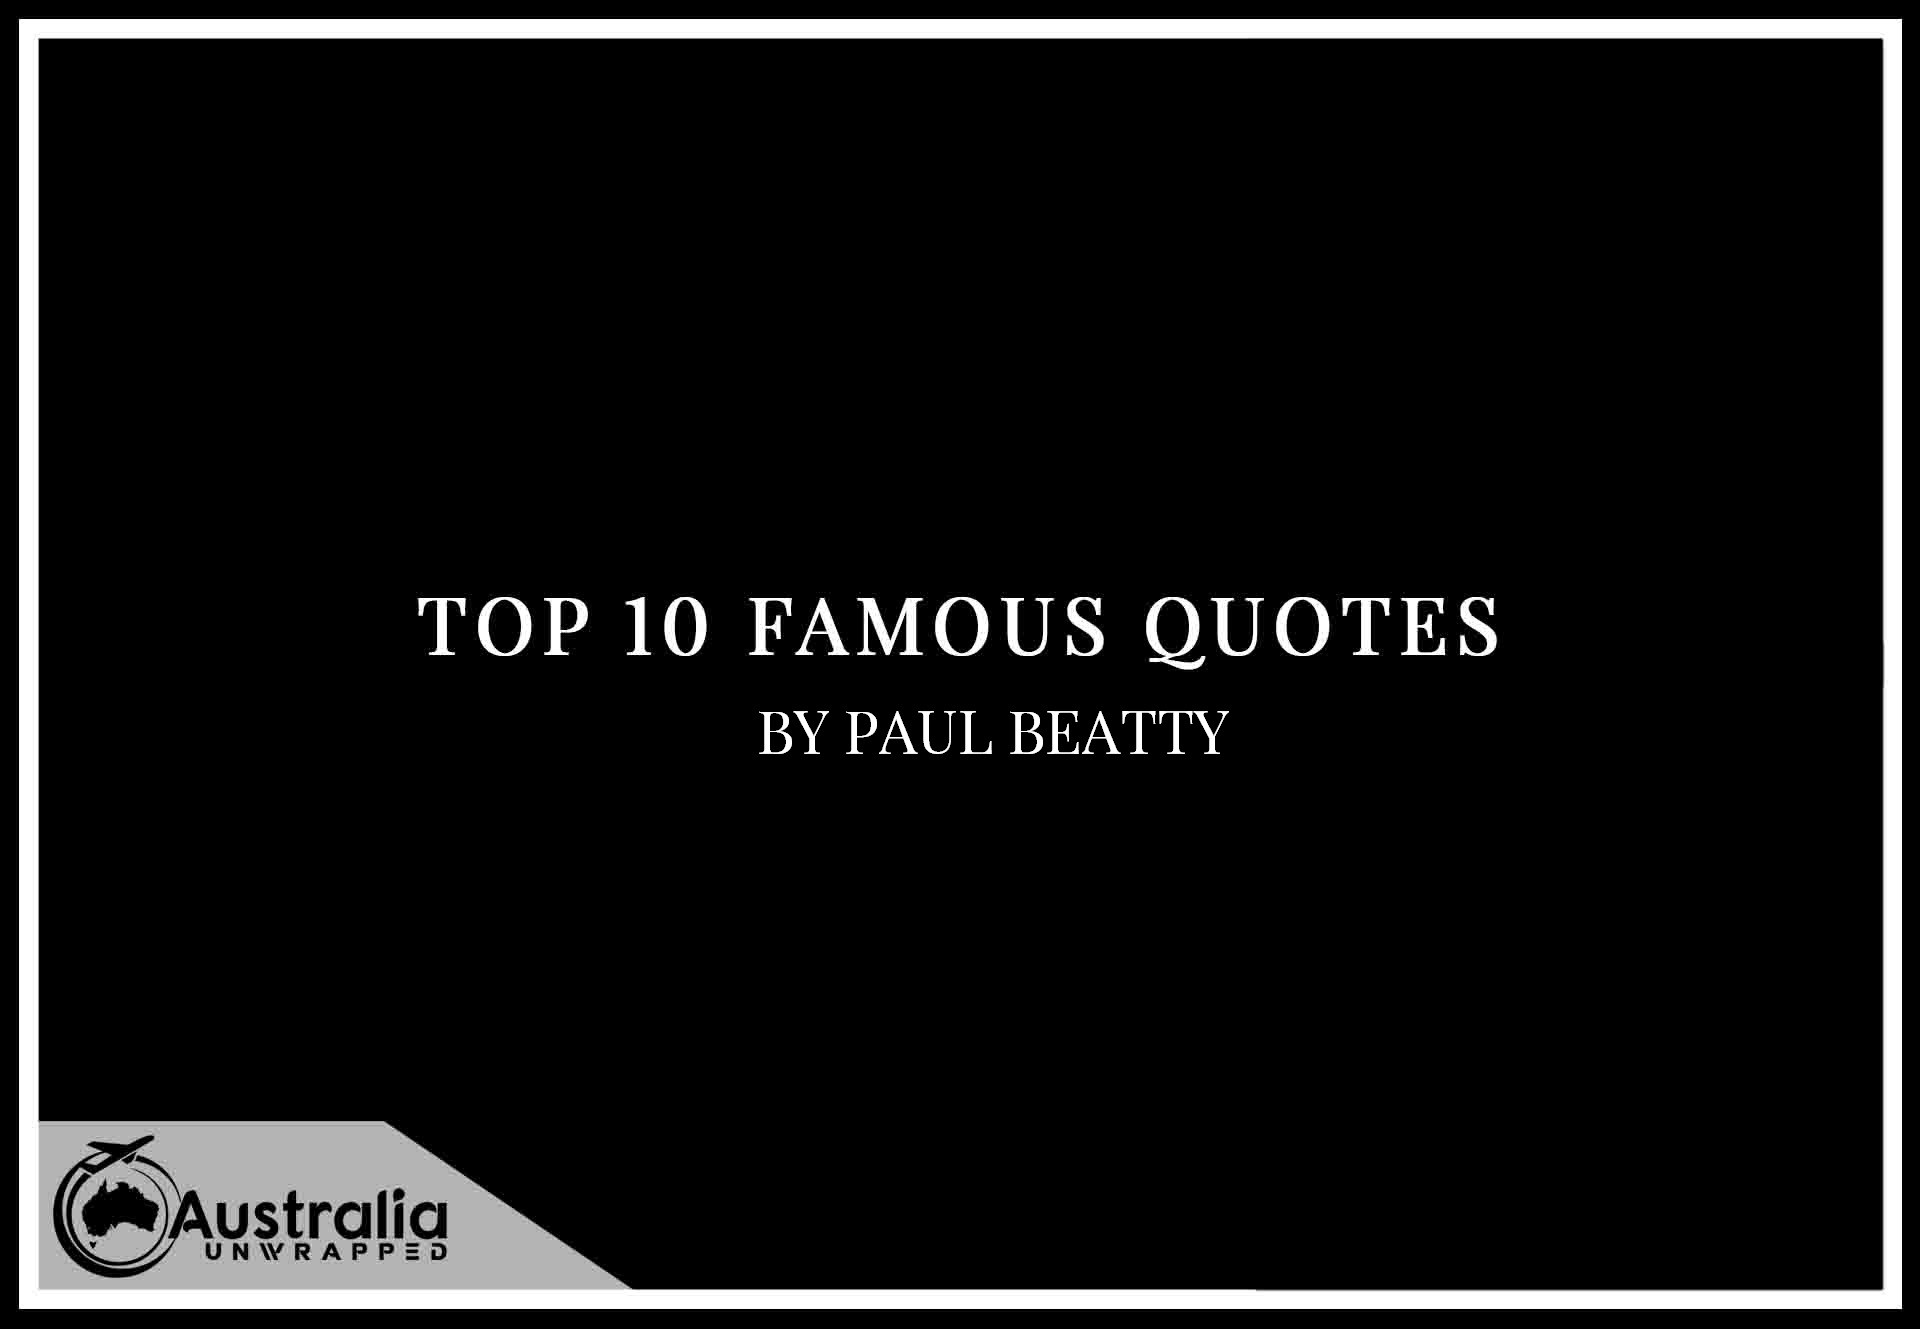 Top 10 Famous Quotes by Author Paul Beatty